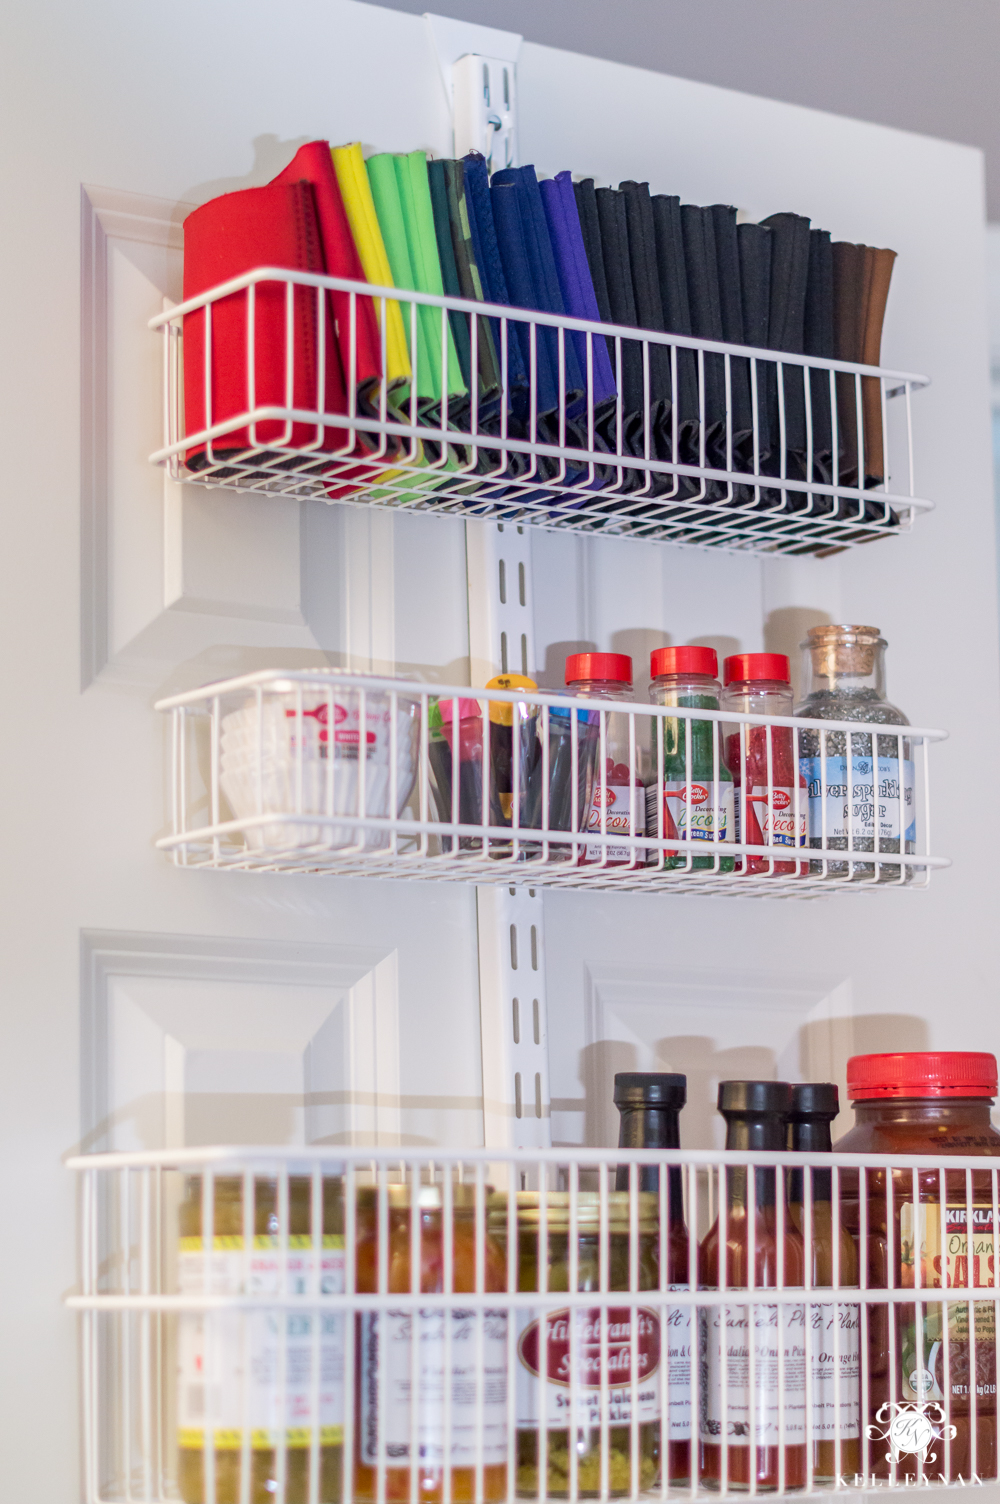 Door organization ideas for pantries with koozie storage